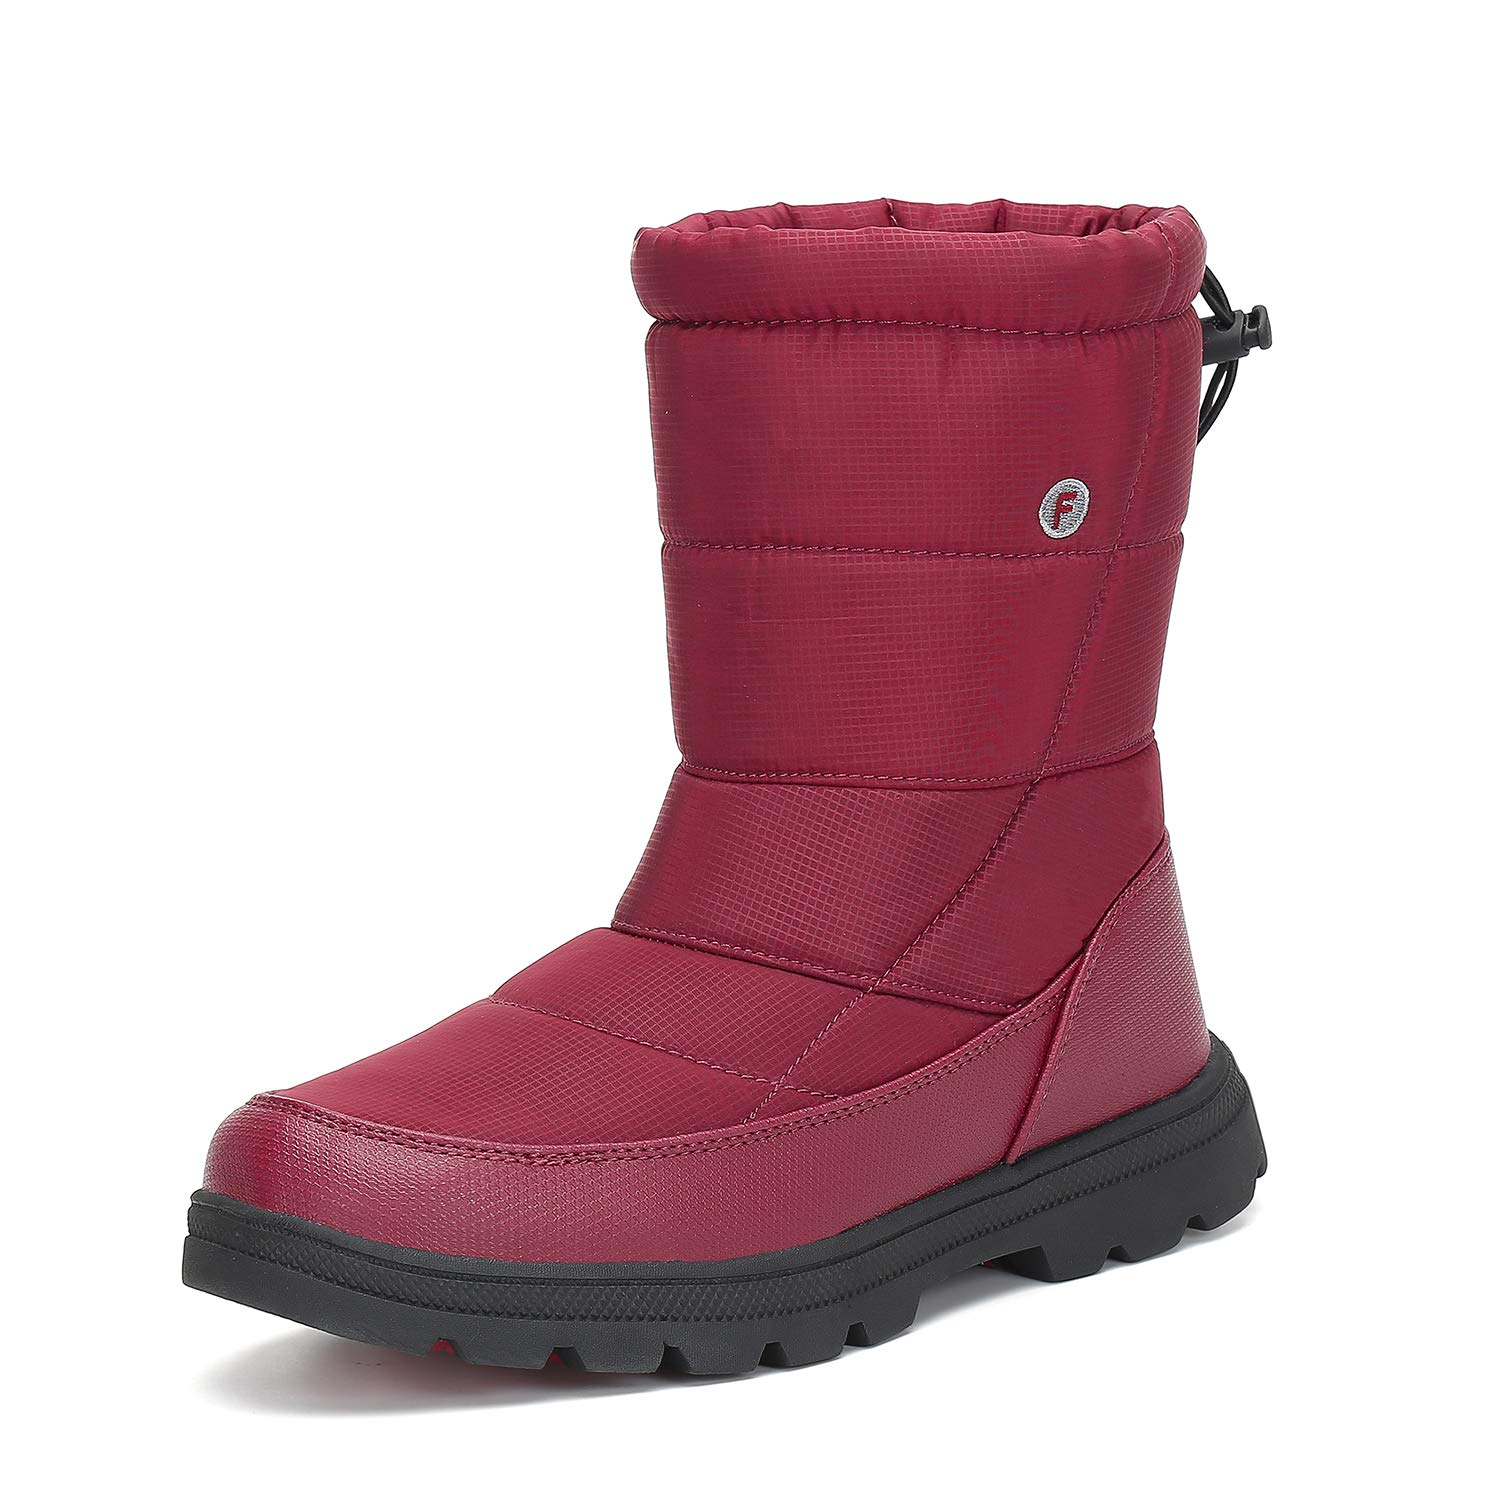 Womens Mens Winter Mid-Calf Snow Boot Fur Warm Waterproof Slip On Outdoor Athletic Casual Walking XZ-F49